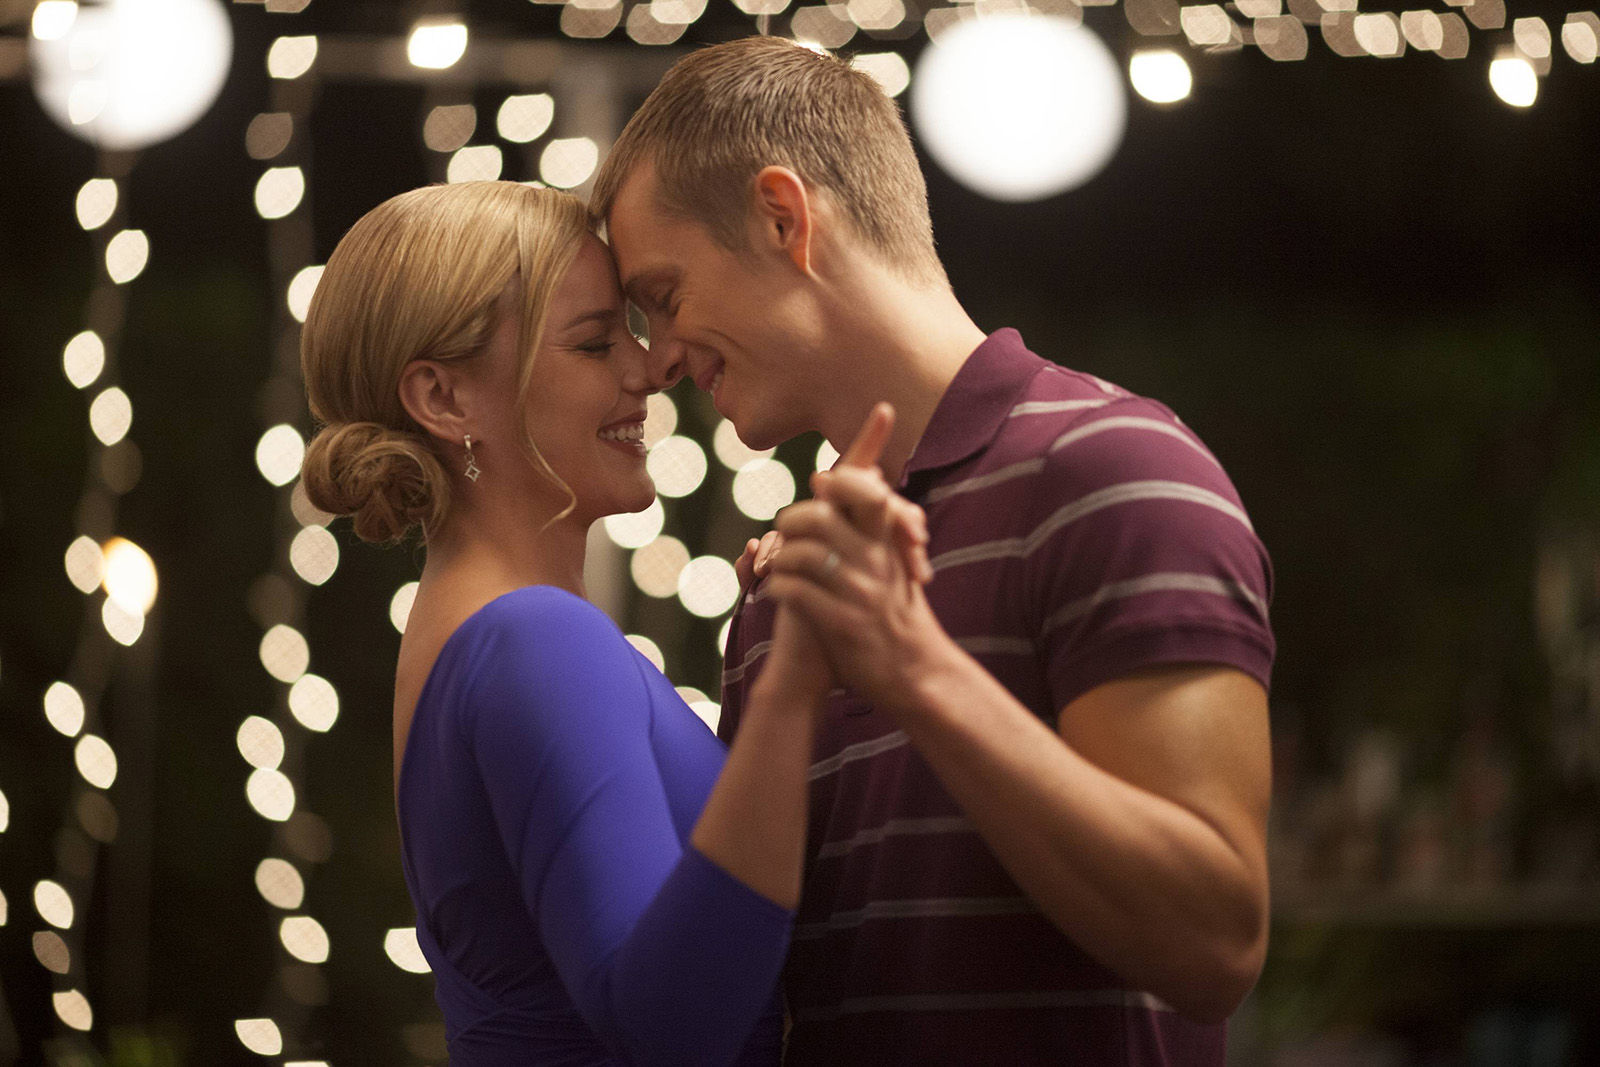 Joel Kinnaman Abbie Cornish Dancing RoboCop Joel Kinnaman and Abbie Cornish Dancing in RoboCop